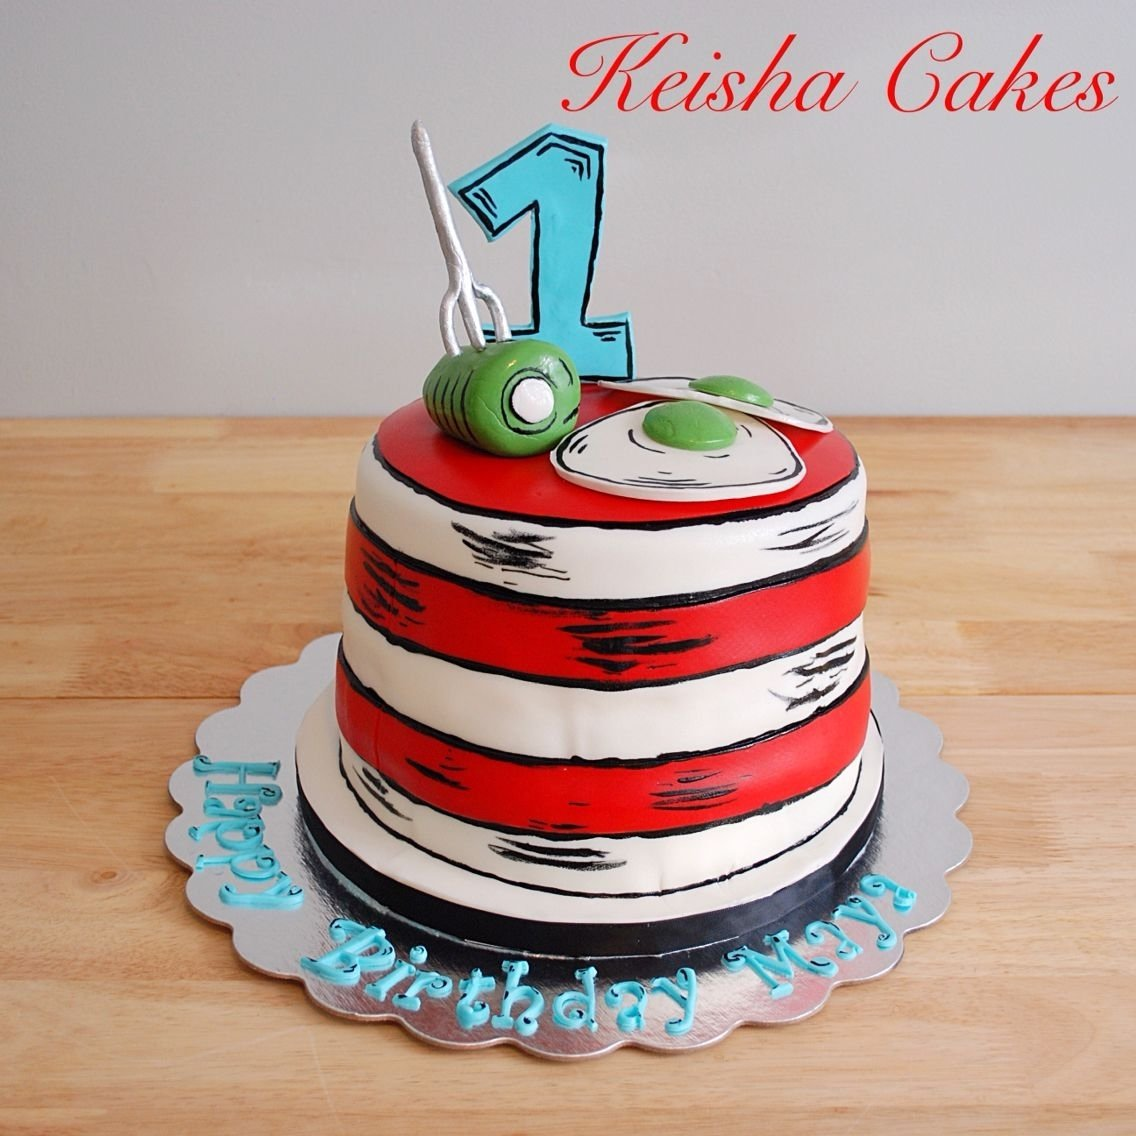 10 Attractive Cat In The Hat Cake Ideas dr seuss cat in the hat birthday cake green eggs and ham on top of 1 2020